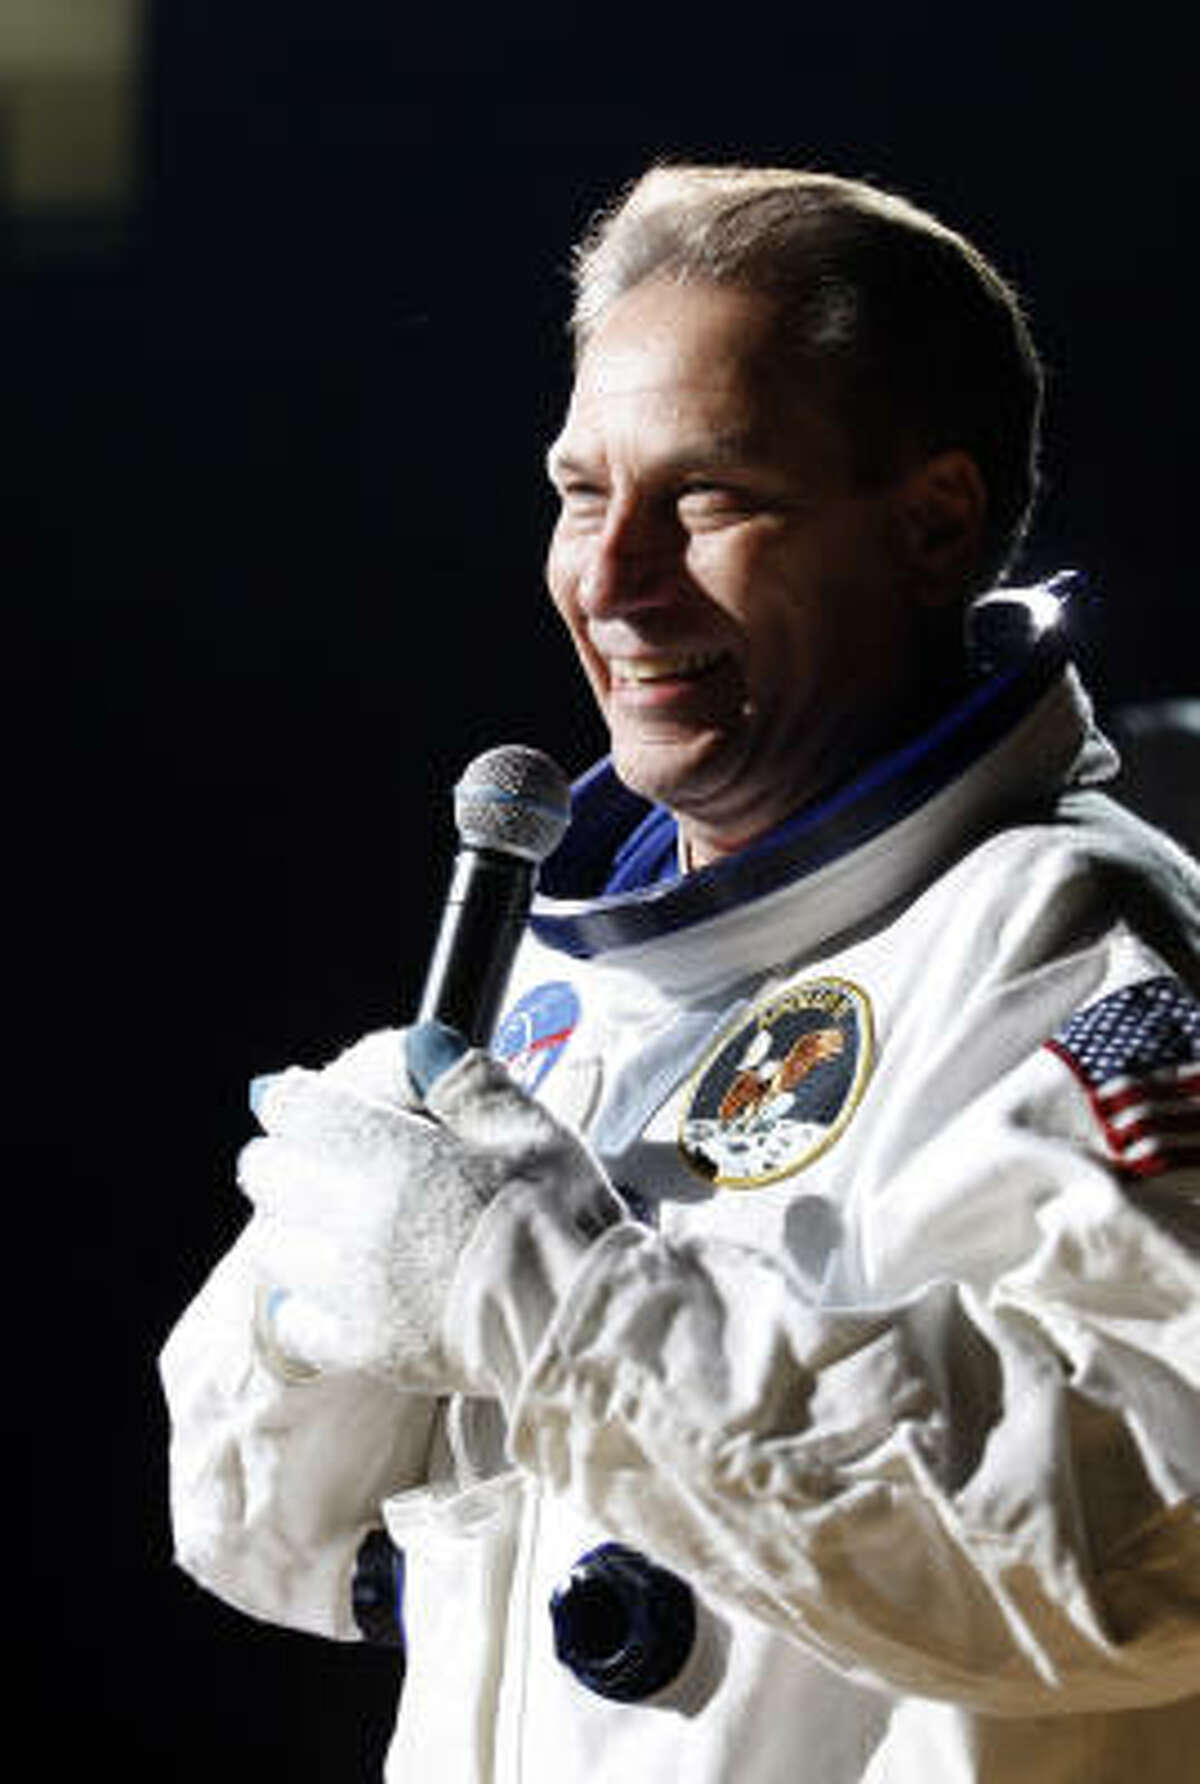 Michigan State coach Tom Izzo speaks to the crowd as an astronaut.